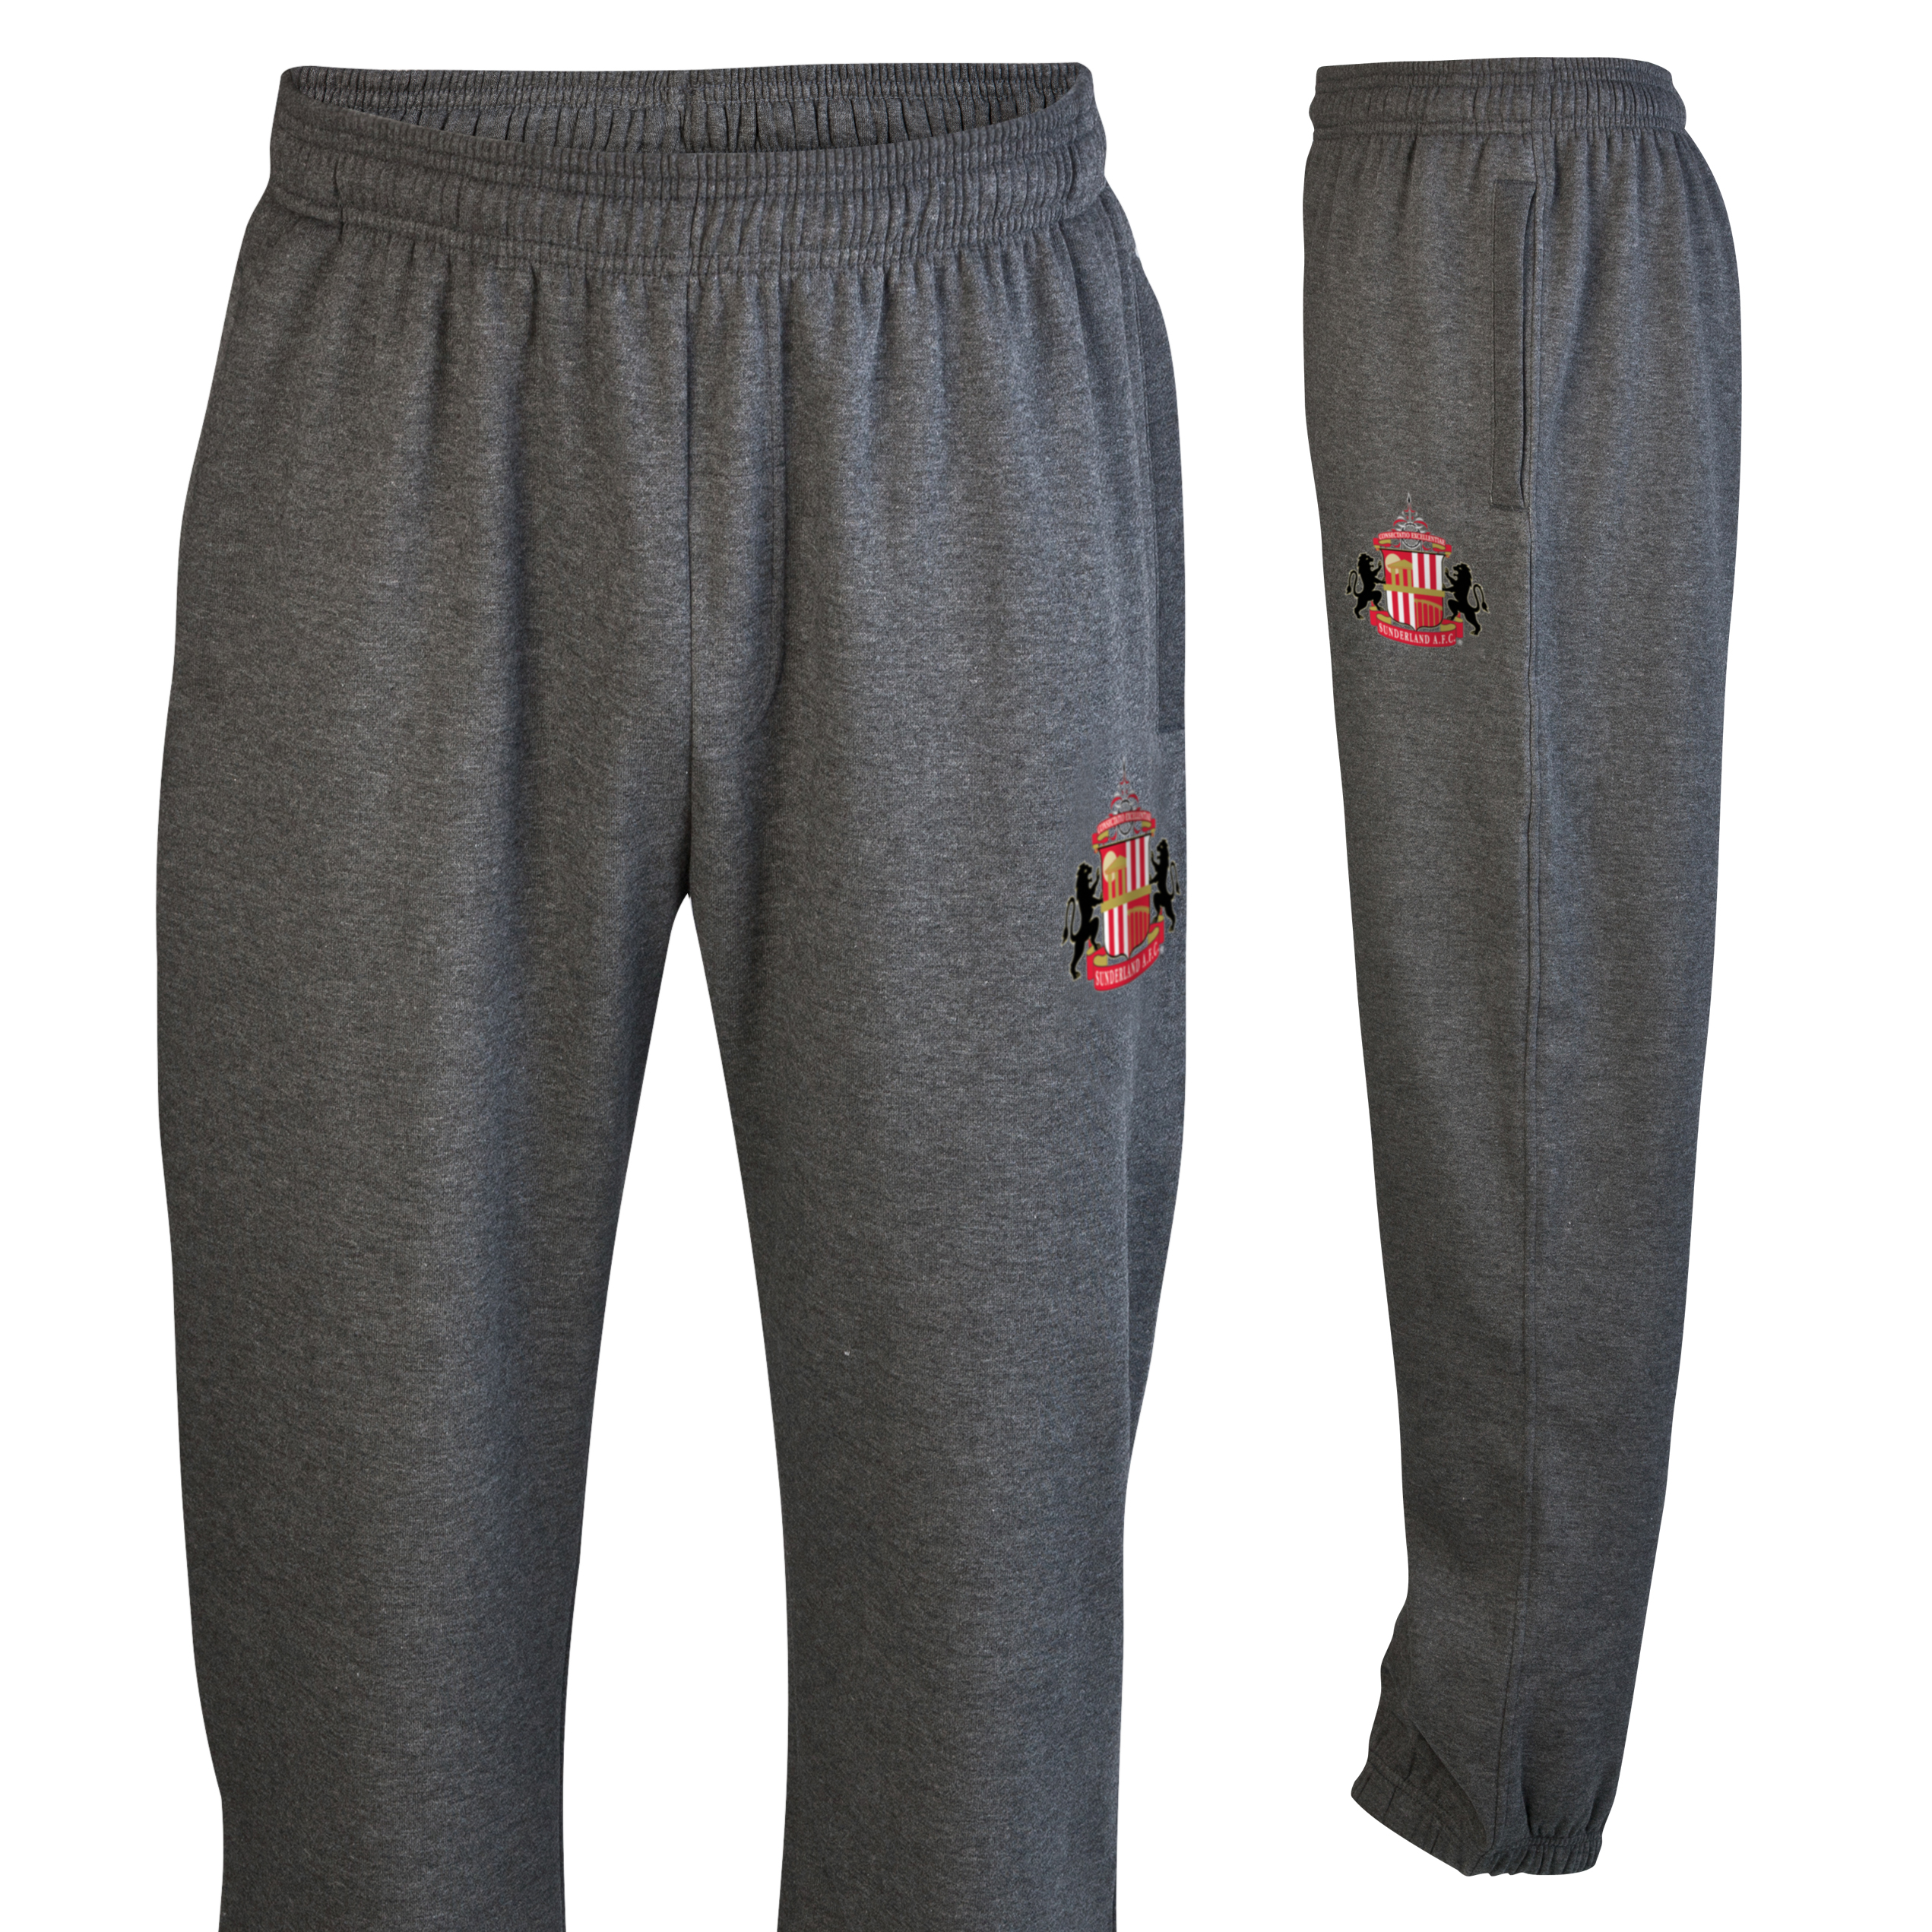 Sunderland Essential Jukebox Jog Pants - Charcoal Marl  - Infant Boys